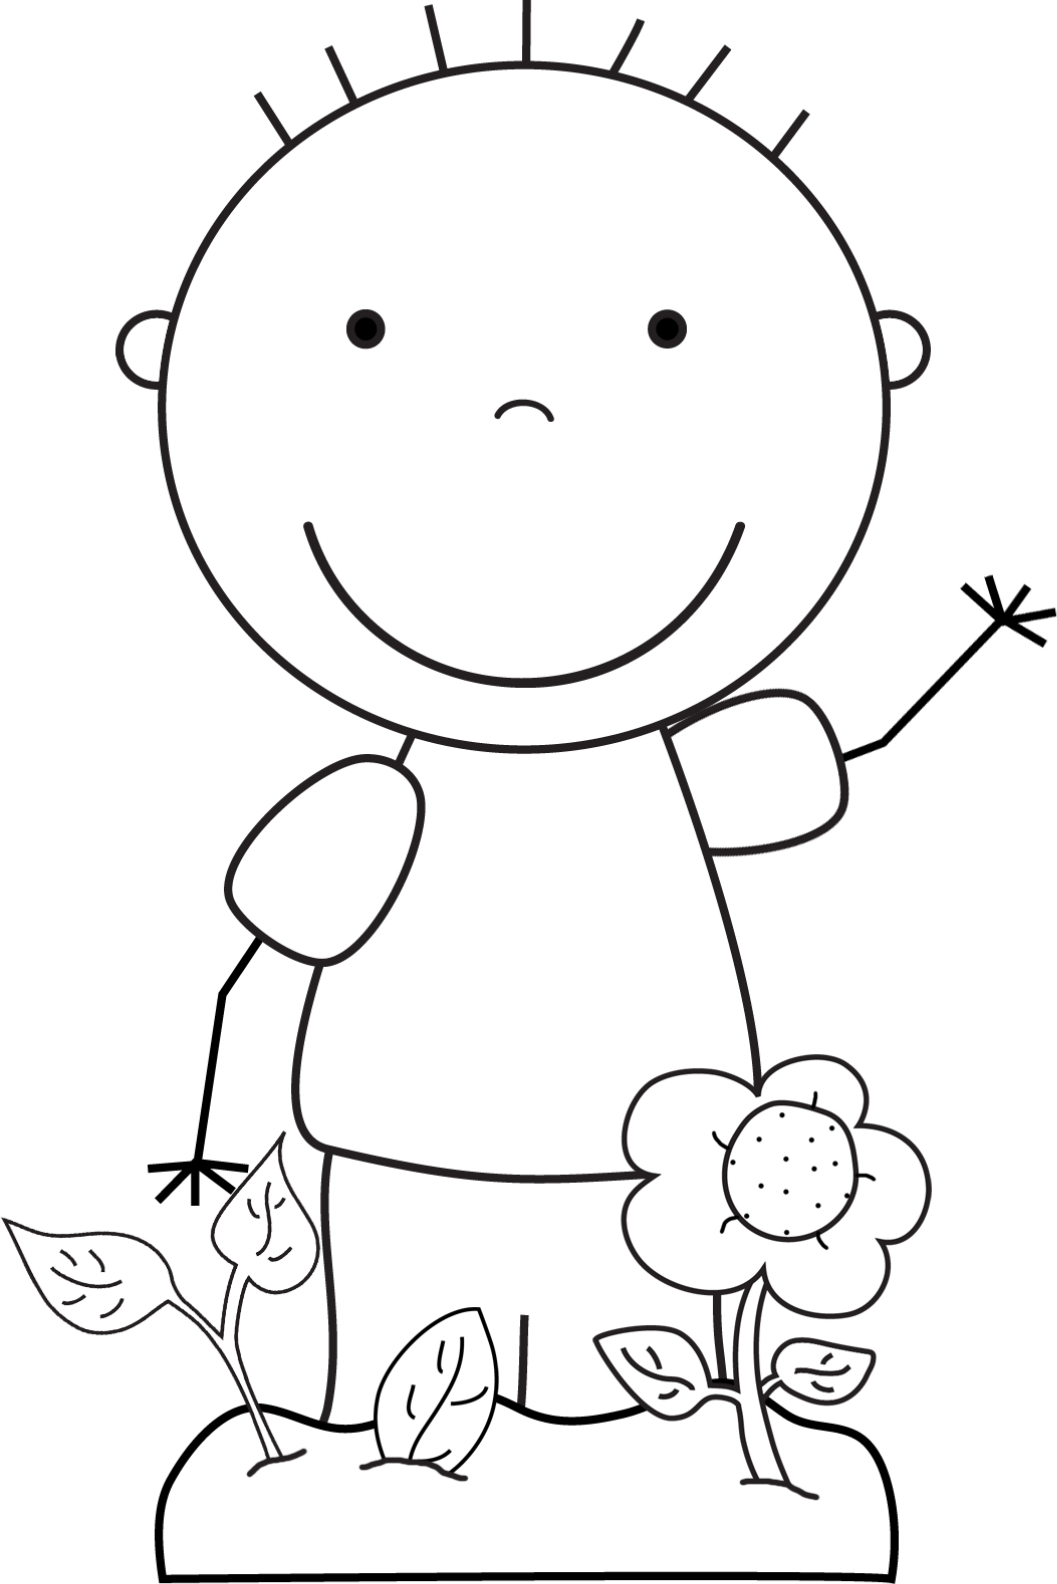 Kid color pages earth day for boys eco friendly living pinterest